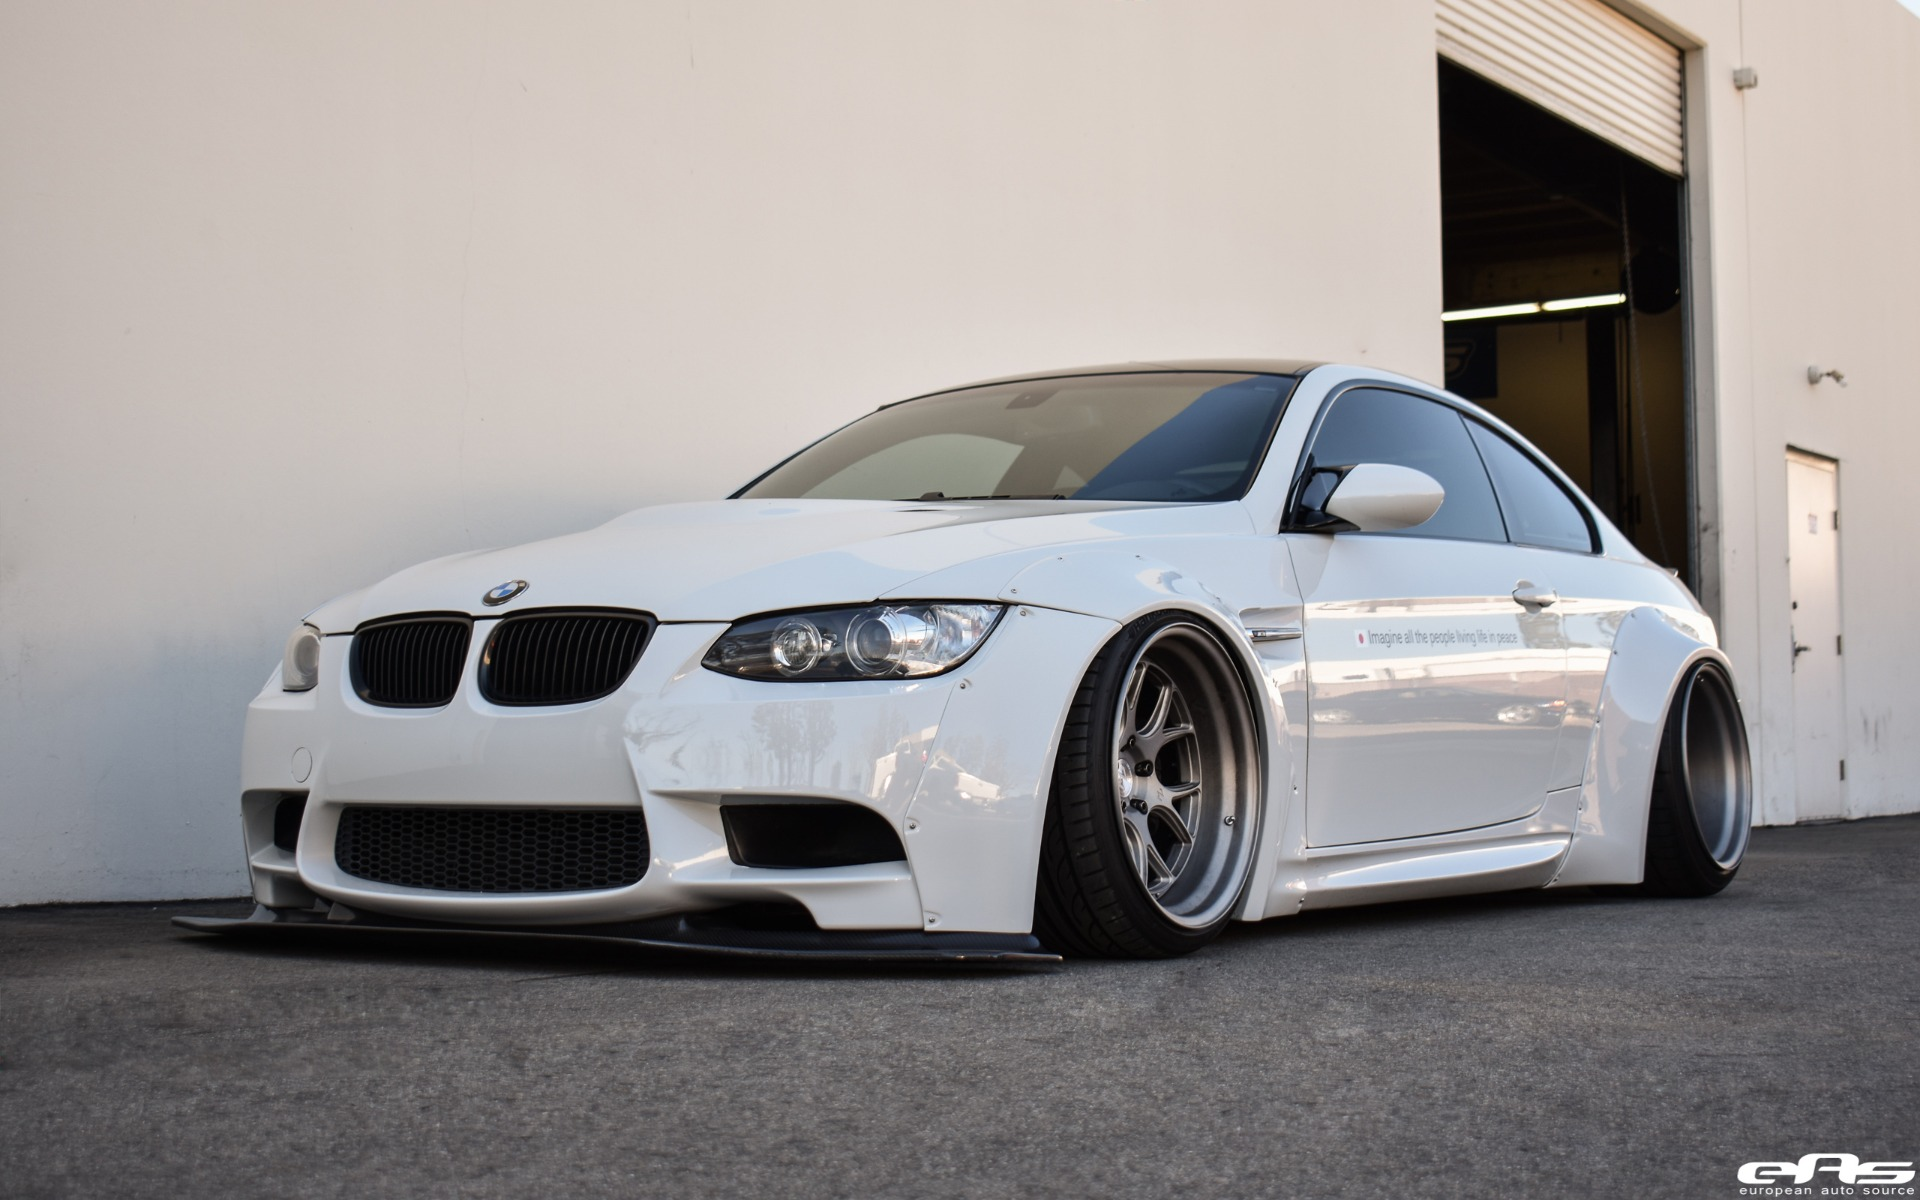 alpine white bmw e92 m3 with a liberty walk widebody kit. Black Bedroom Furniture Sets. Home Design Ideas